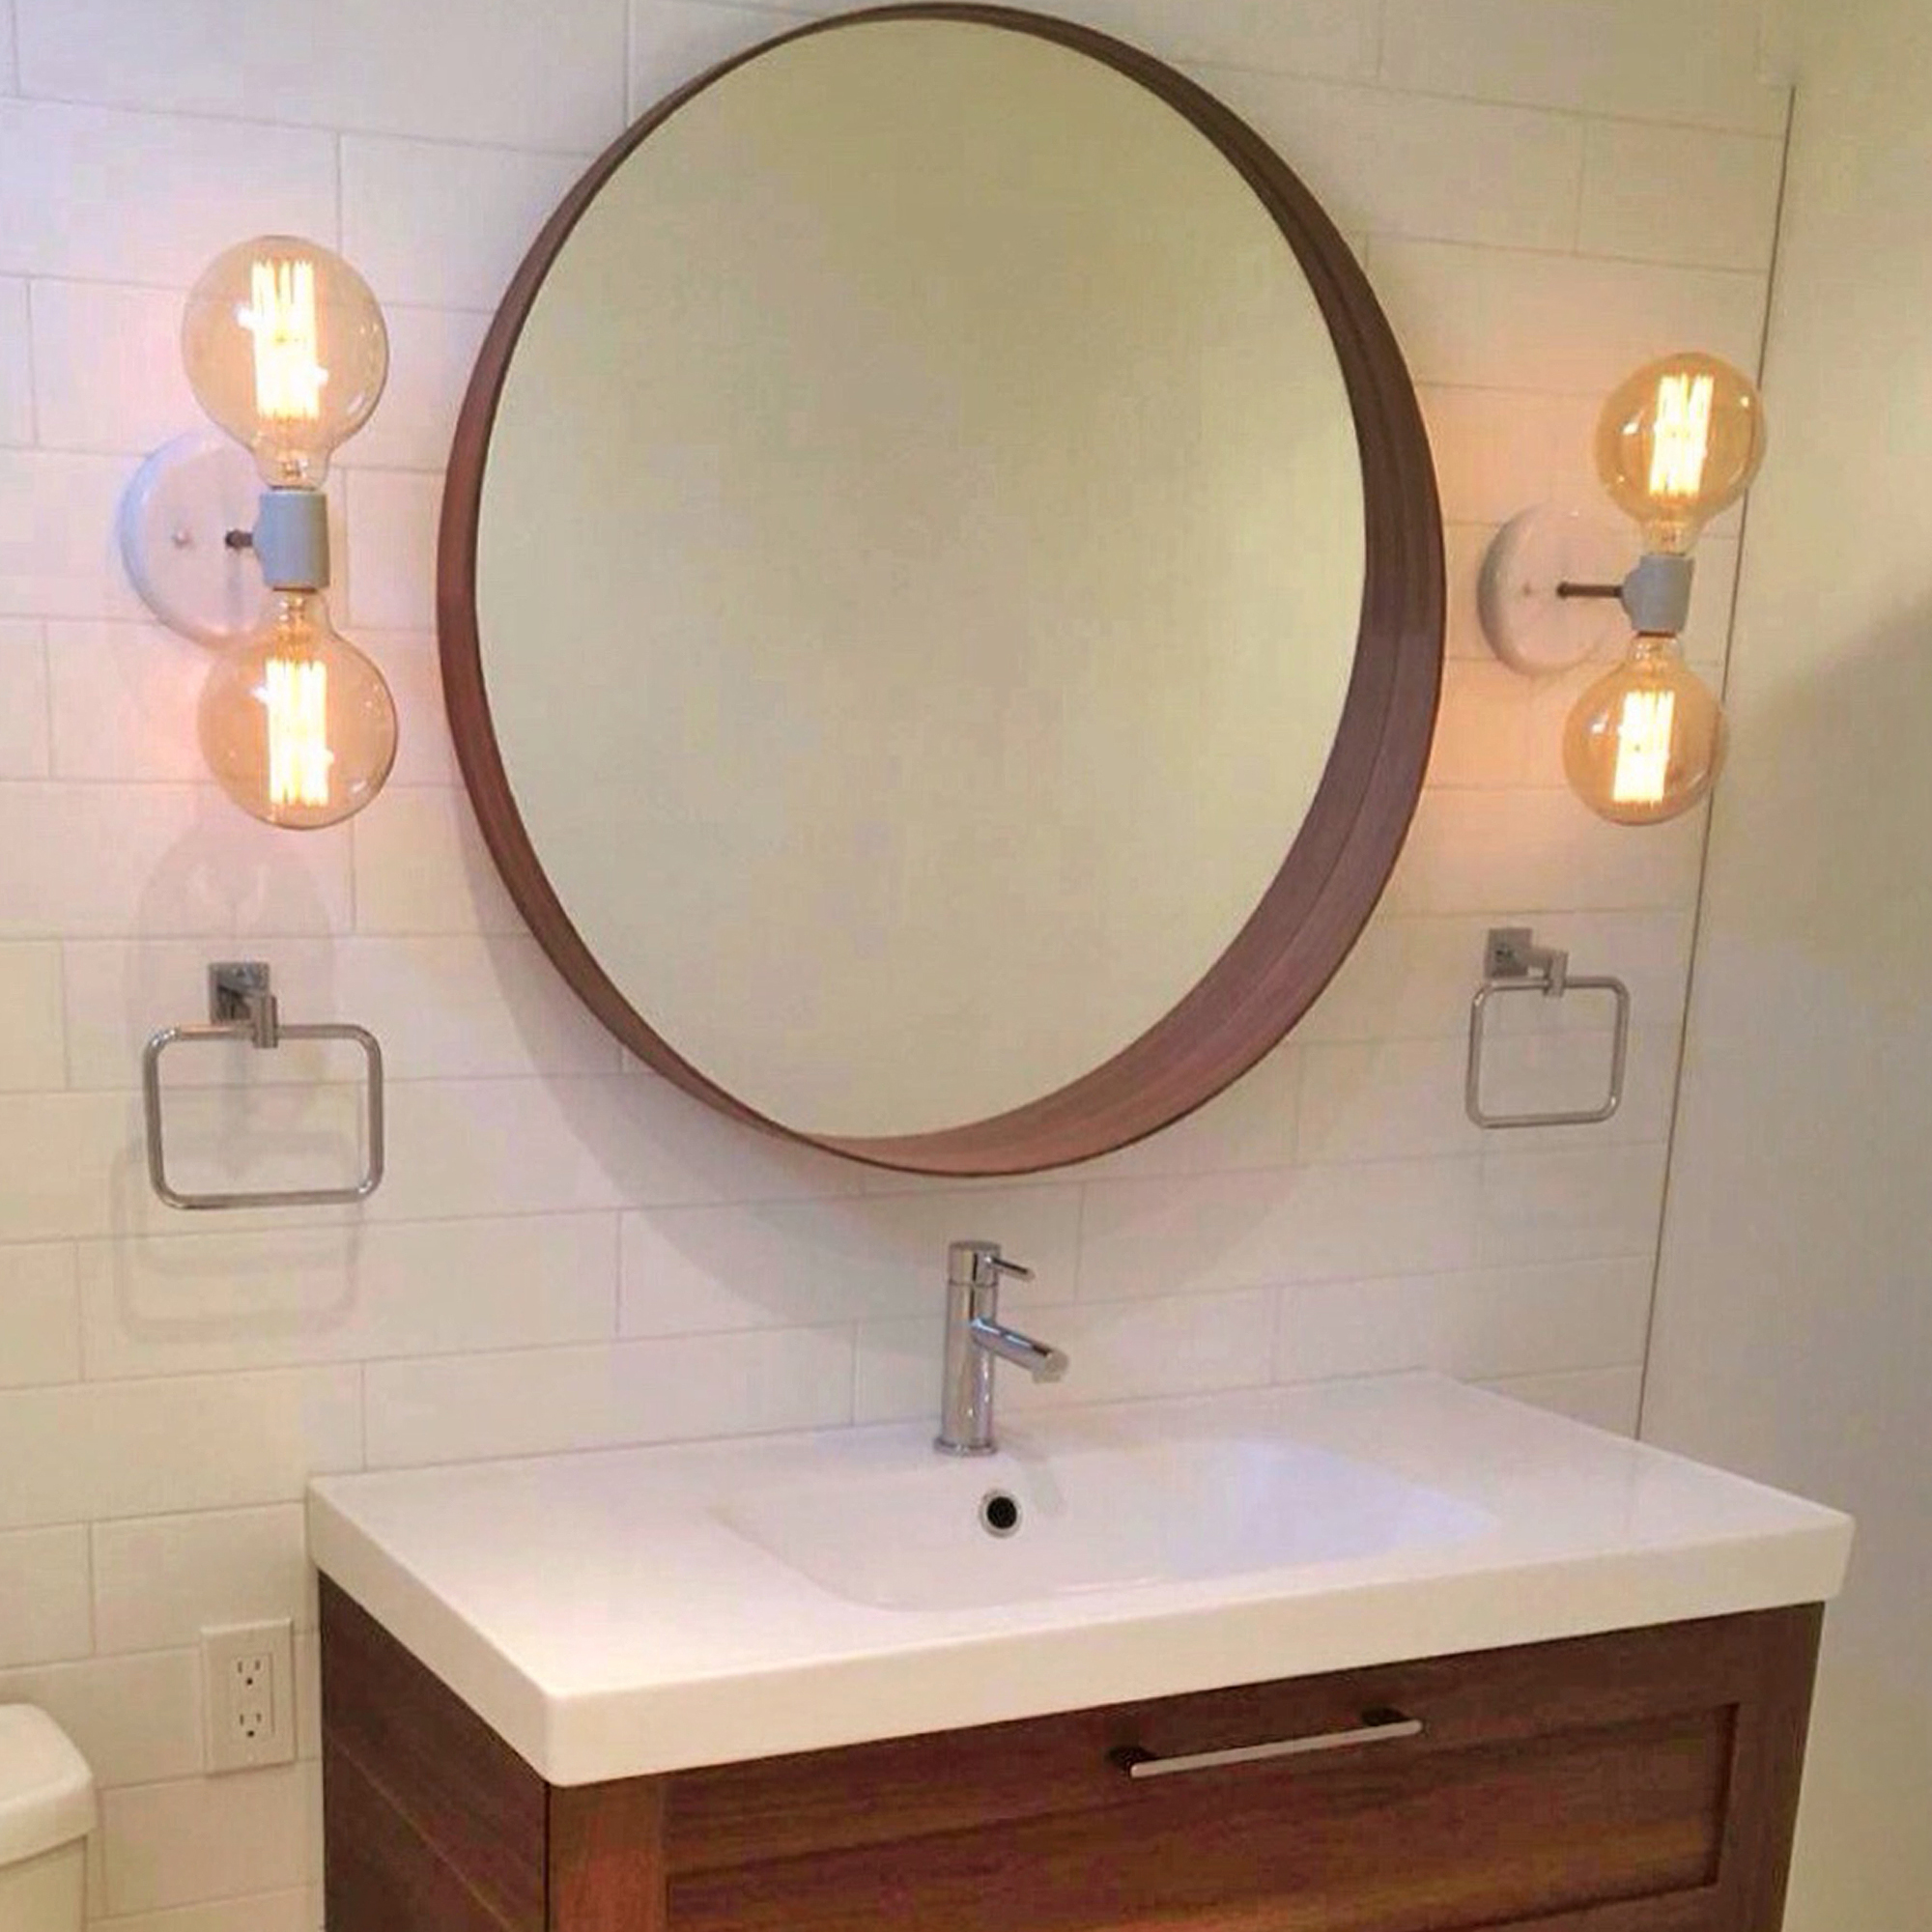 a pair of modern double light wall sconces above the bathroom sink